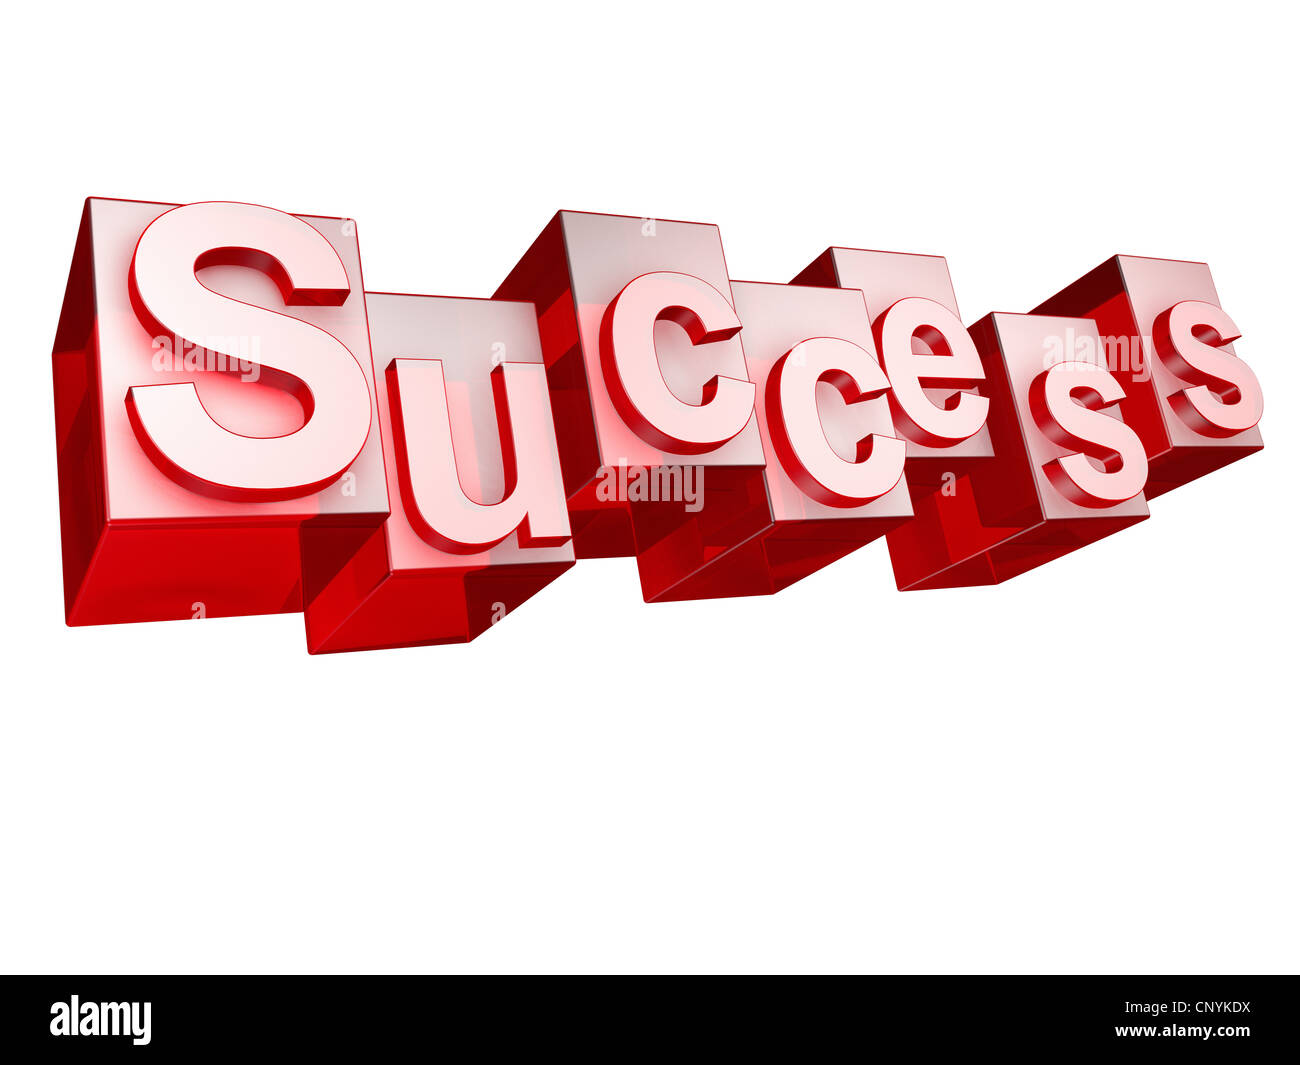 The word 'Success' in 3D letters on white background - Stock Image